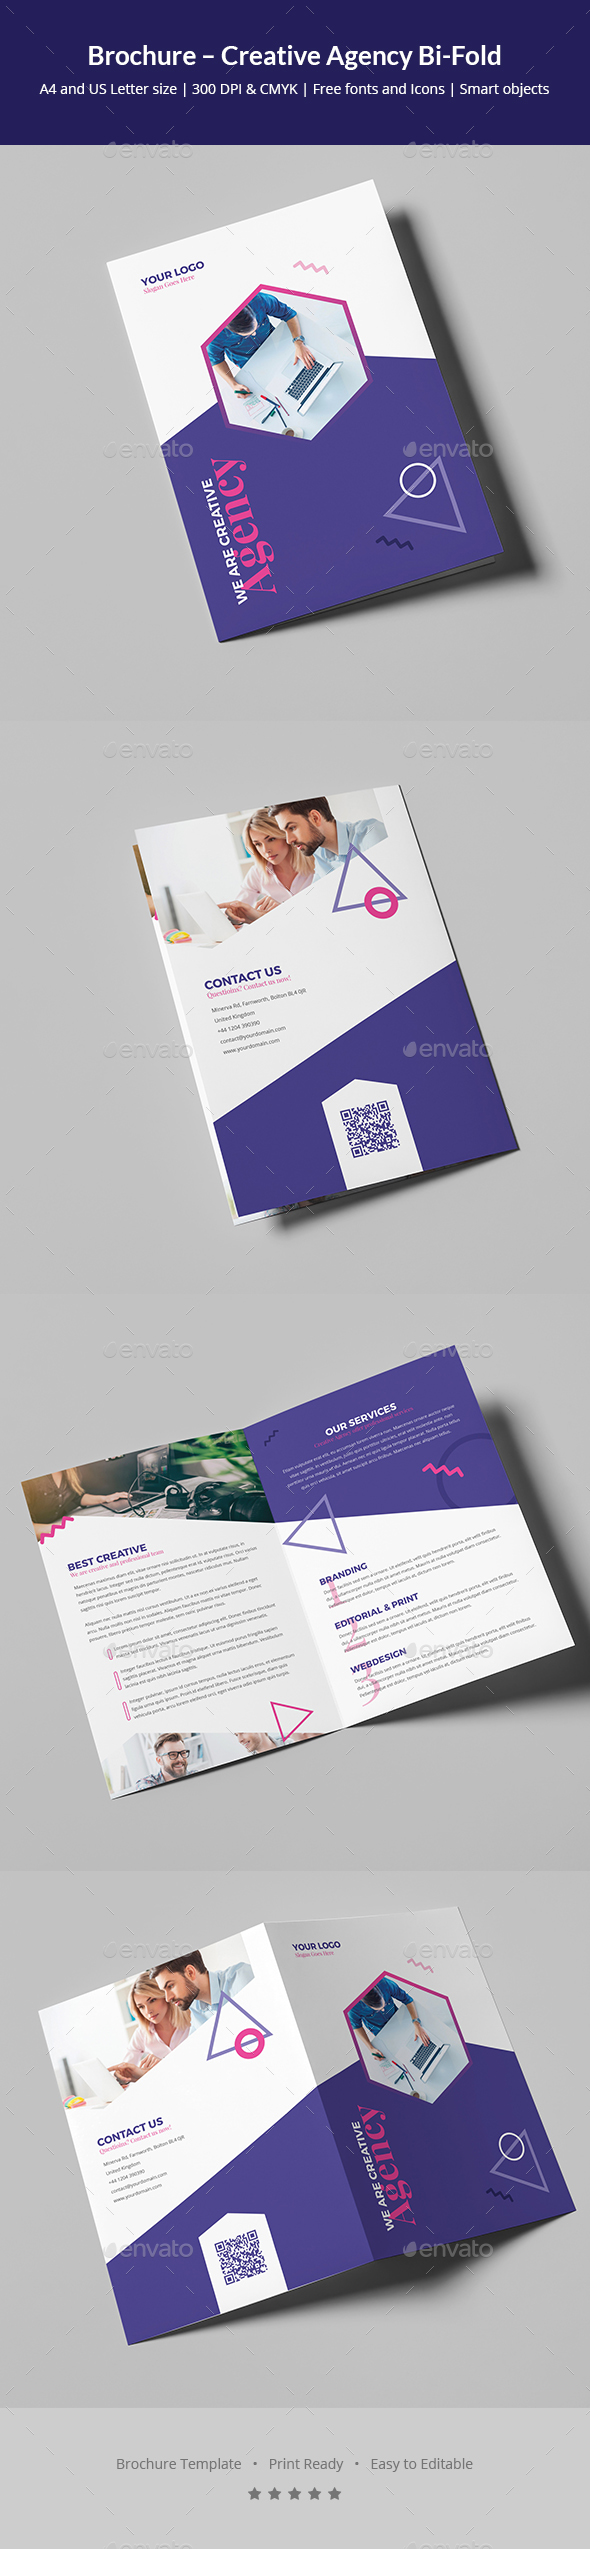 Brochure – Creative Agency Bi-Fold